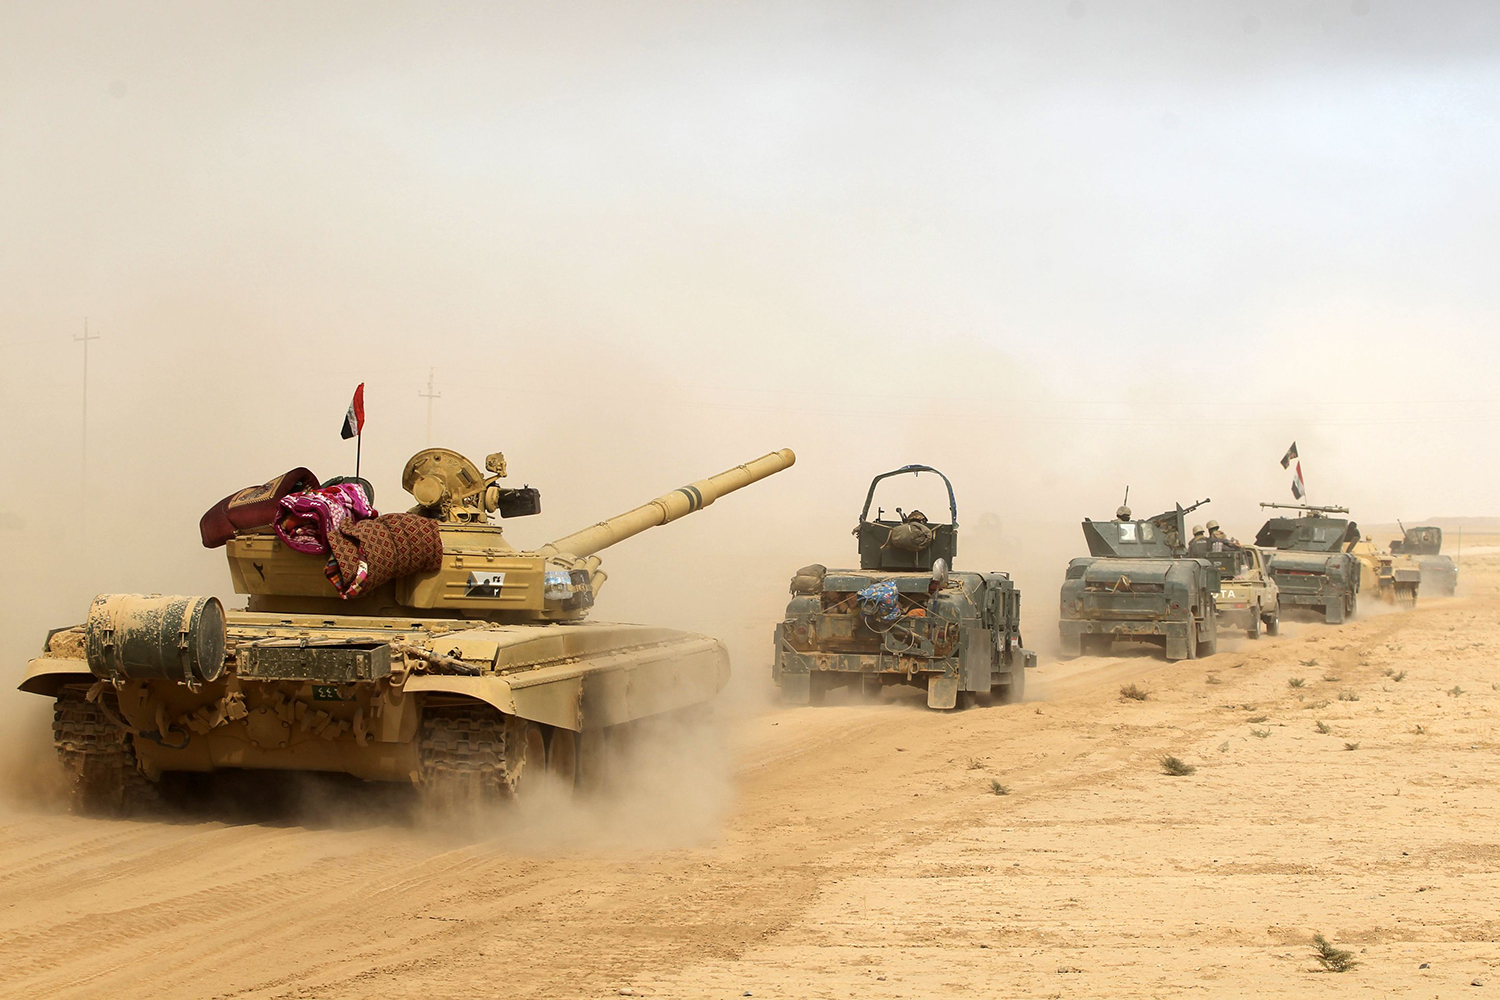 TOPSHOT - Iraqi forces deploy on October 17, 2016 in the area of al-Shurah, some 45 kms south of Mosul, as they advance towards the city to retake it from the Islamic State (IS) group jihadists. Some 30,000 federal forces are leading the offensive, backed by air and ground support from a 60-nation US-led coalition, in what is expected to be a long and difficult assault on IS's last major Iraqi stronghold. / AFP PHOTO / AHMAD AL-RUBAYE / TT / kod 444